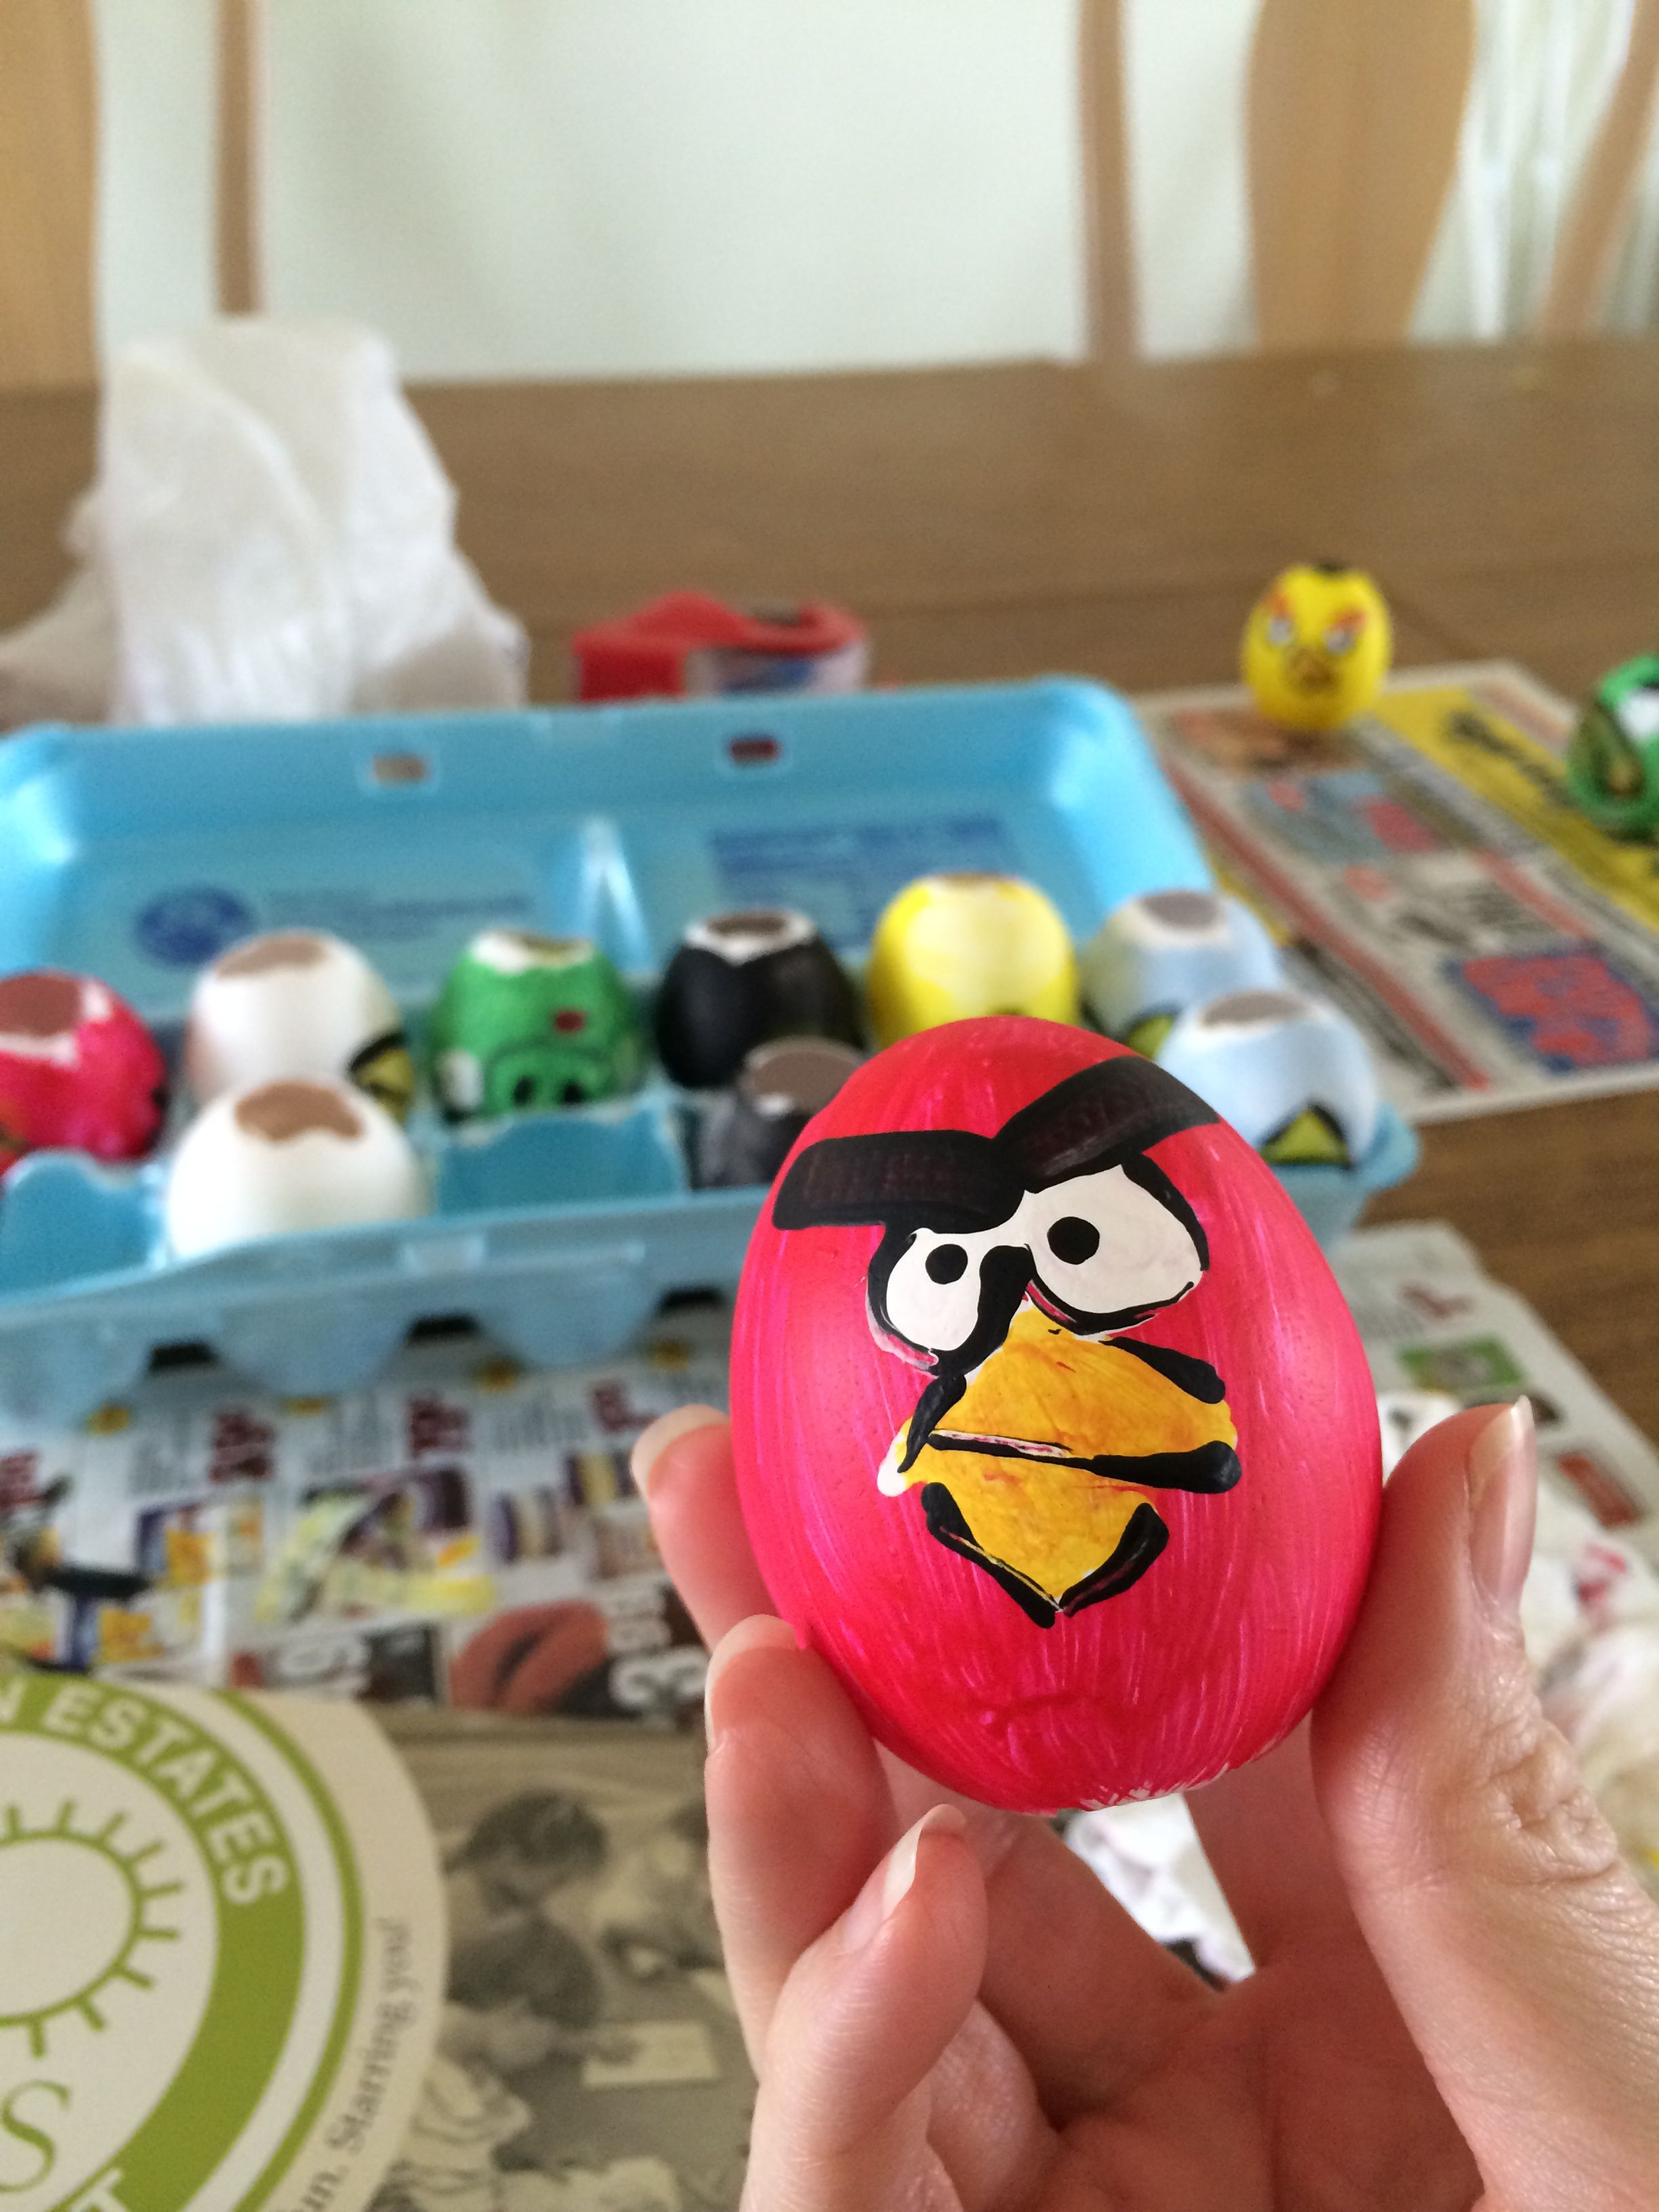 Making Angry Birds glitter bomb eggs this year!